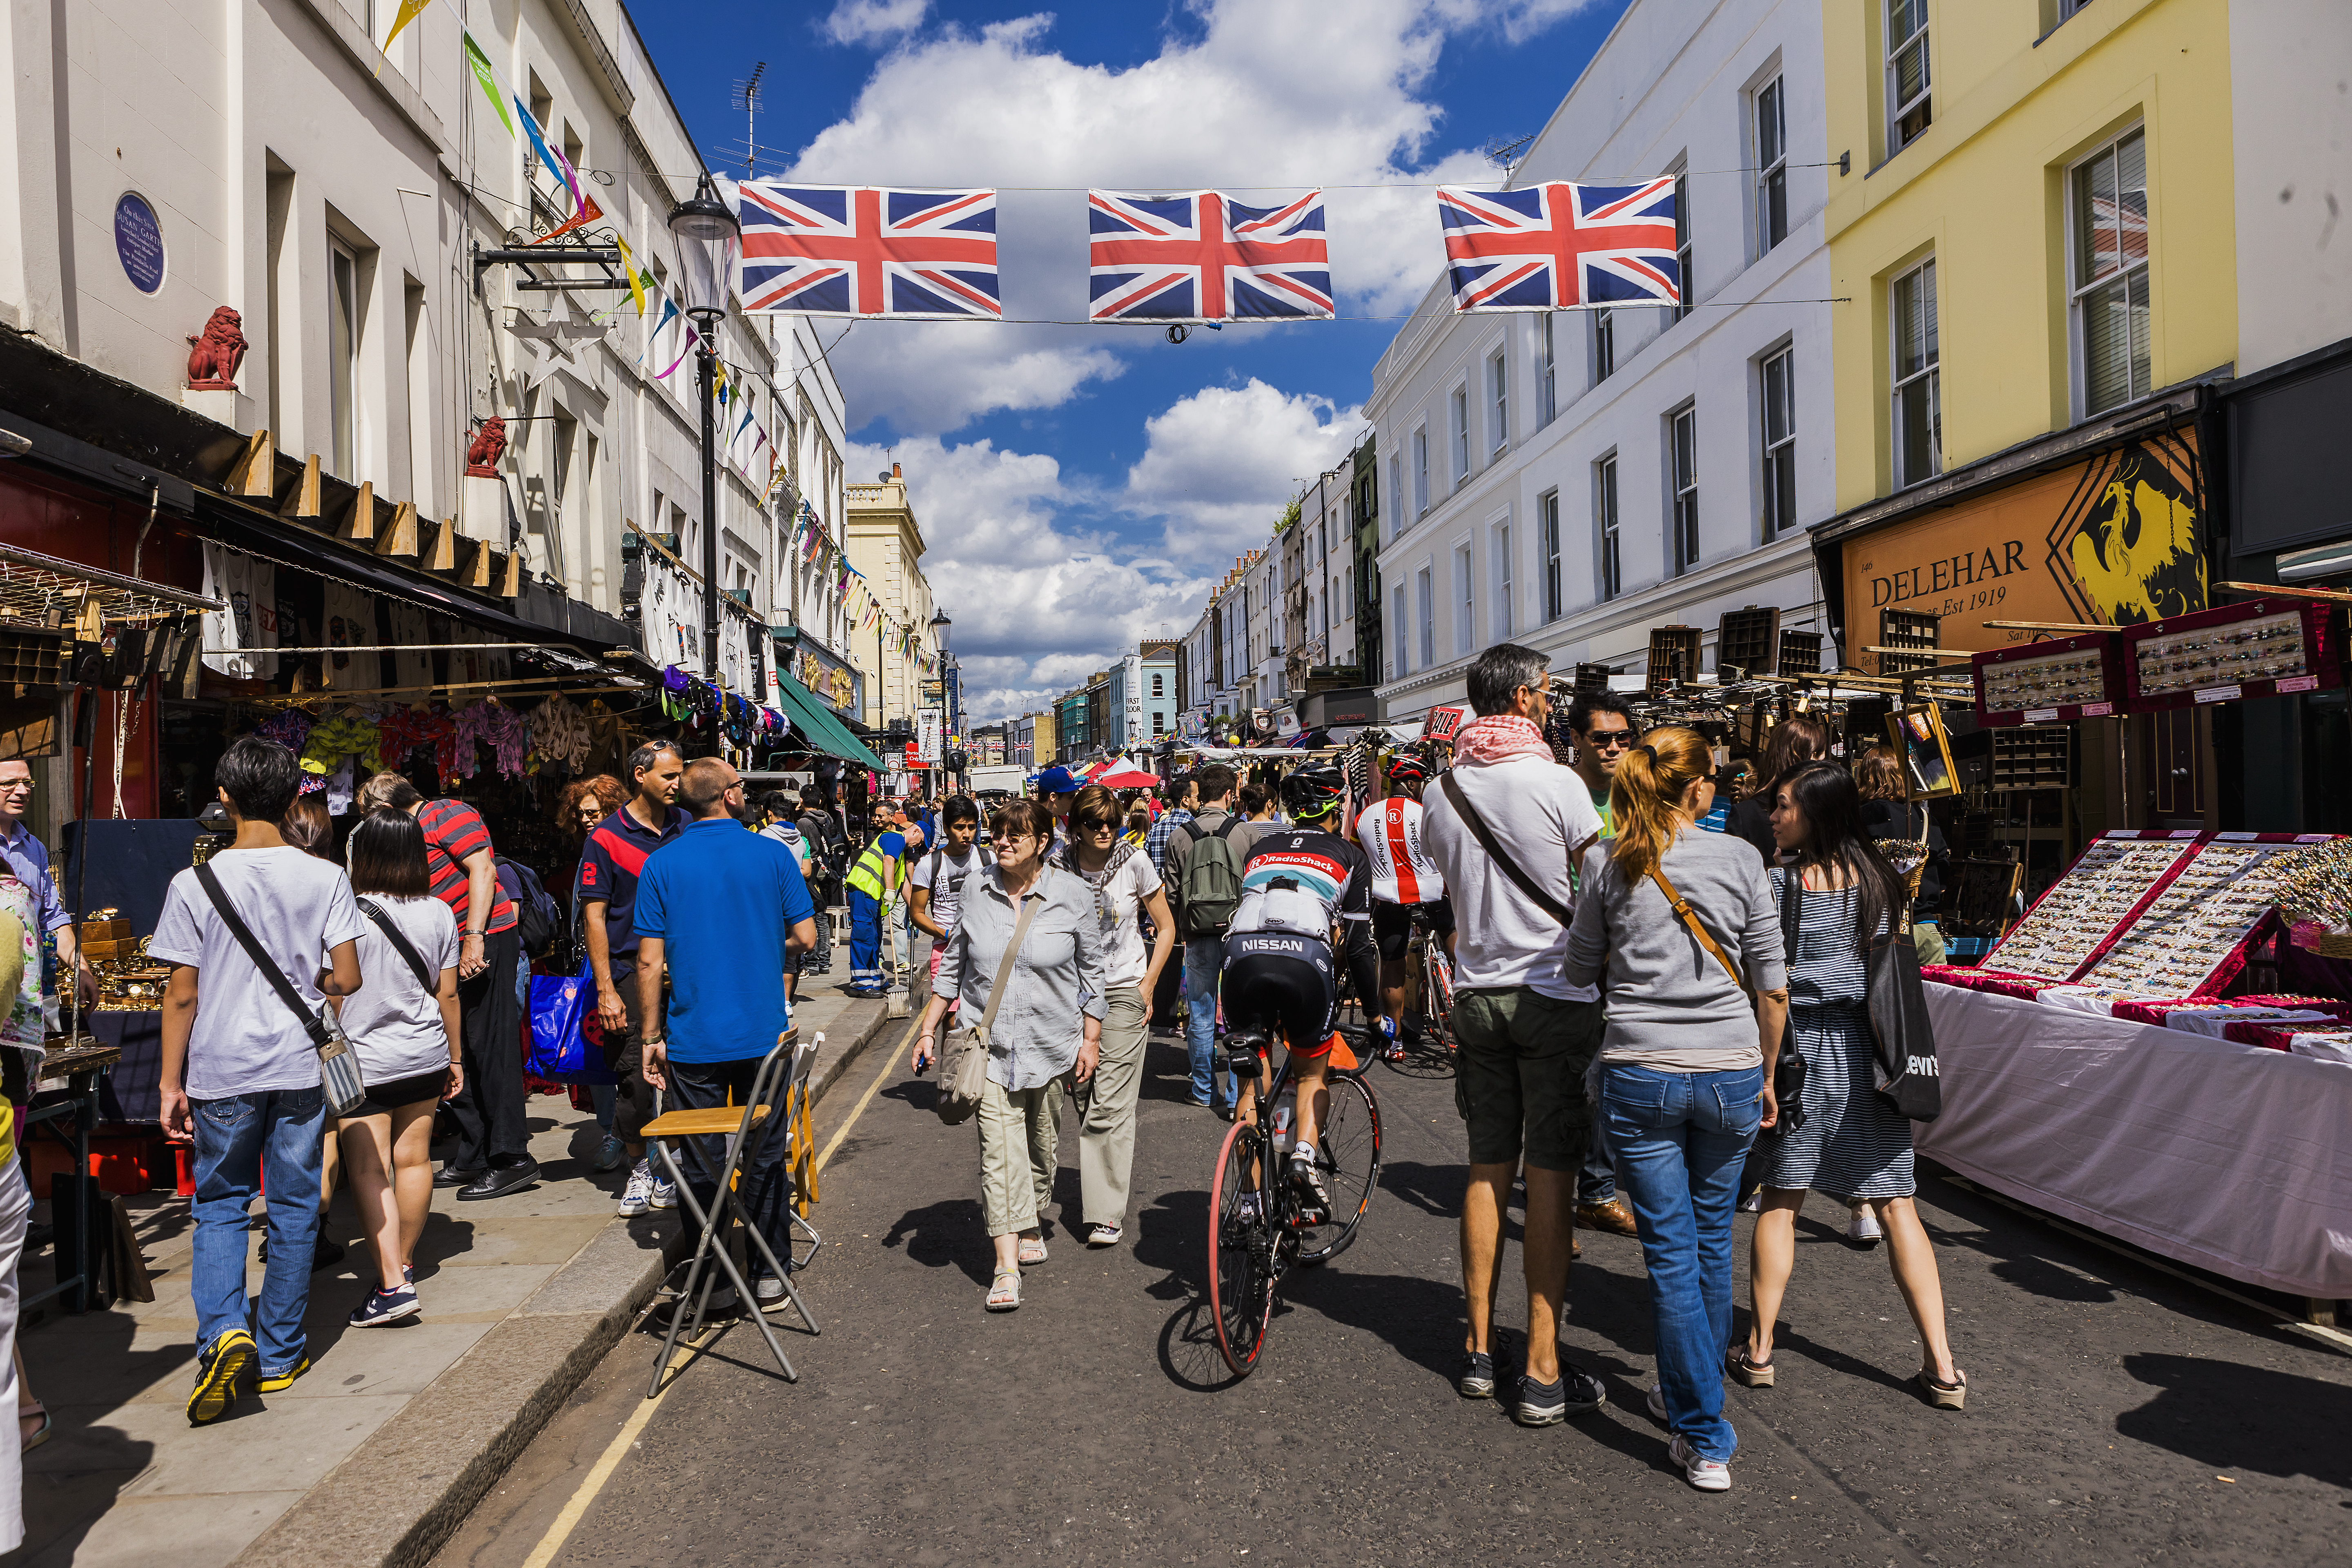 Retail sales have risen by 1.4% in the U.K. following the sharp drop in the pound after the Brexit vote